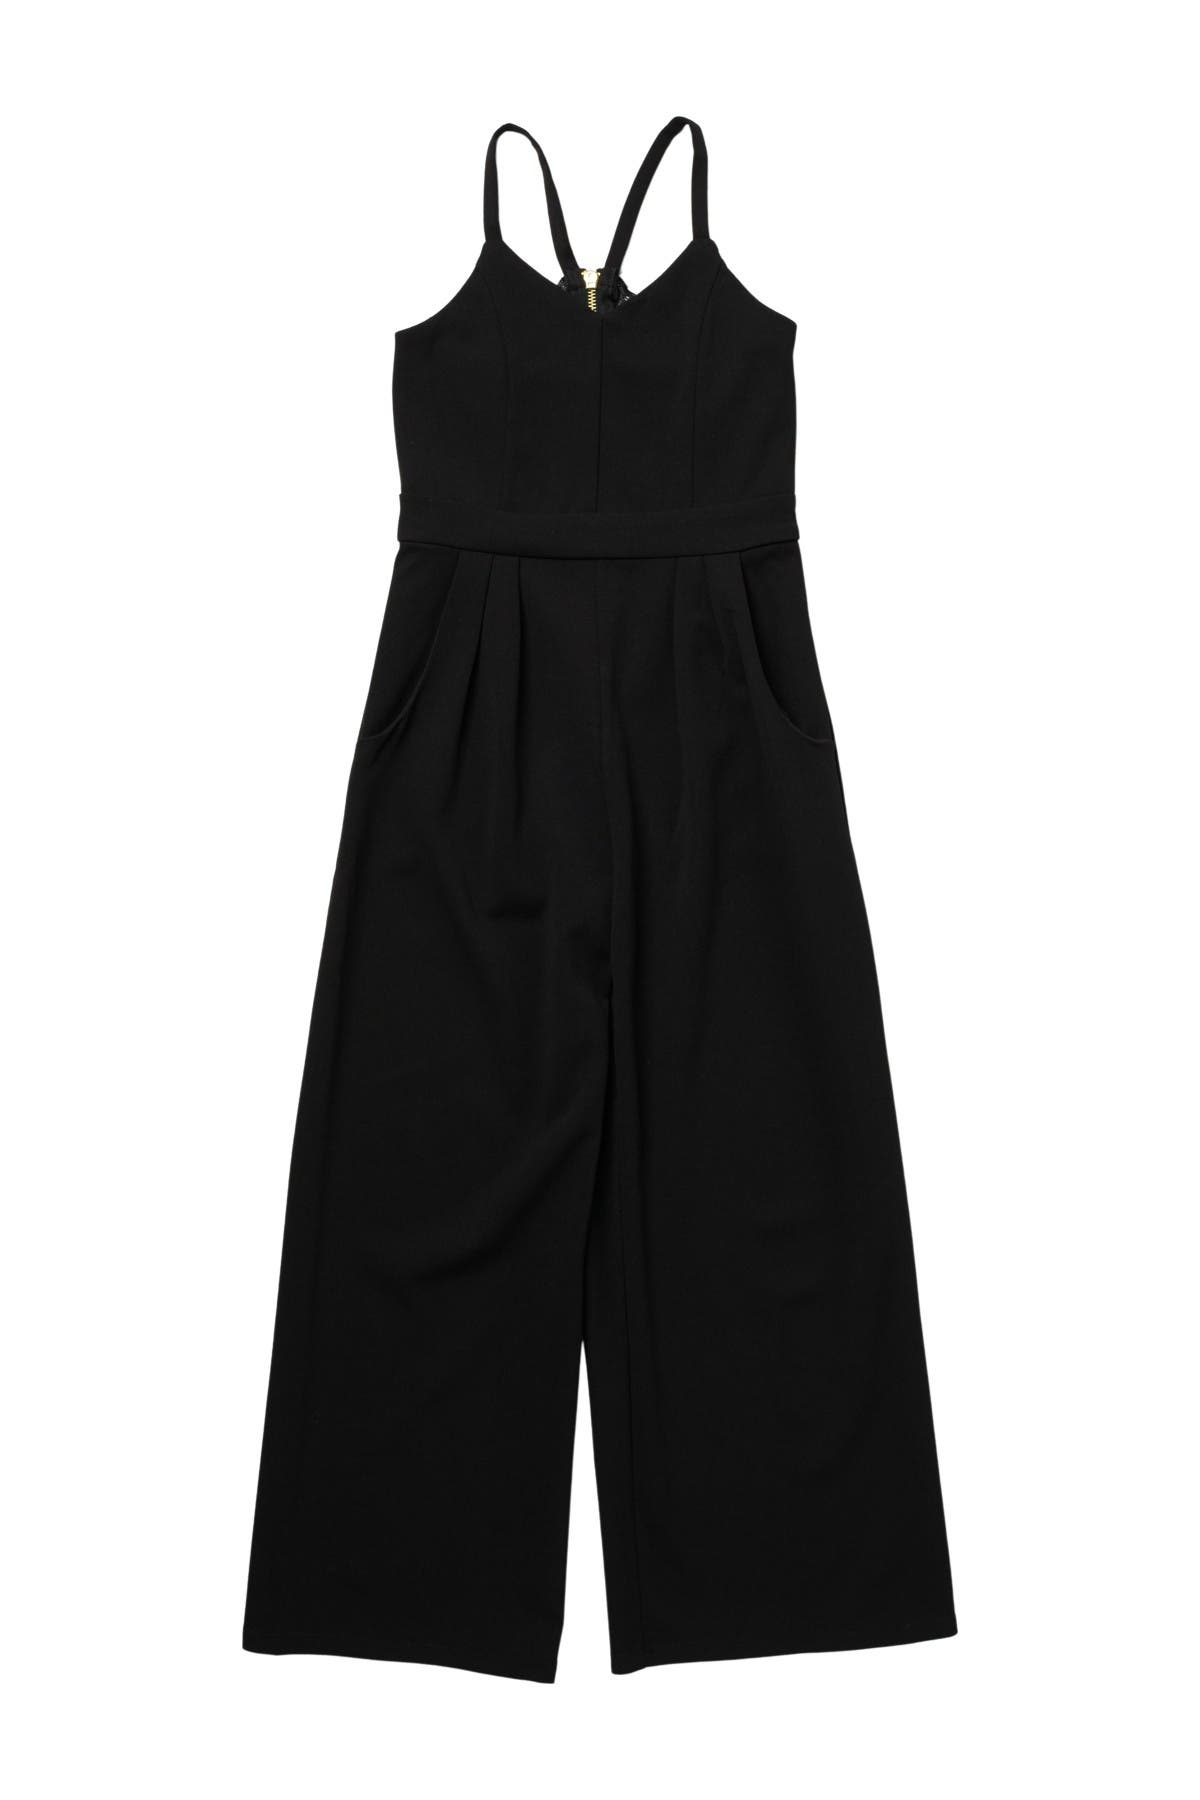 Image of Love, Nickie Lew Lace Back Sleeveless Jumpsuit